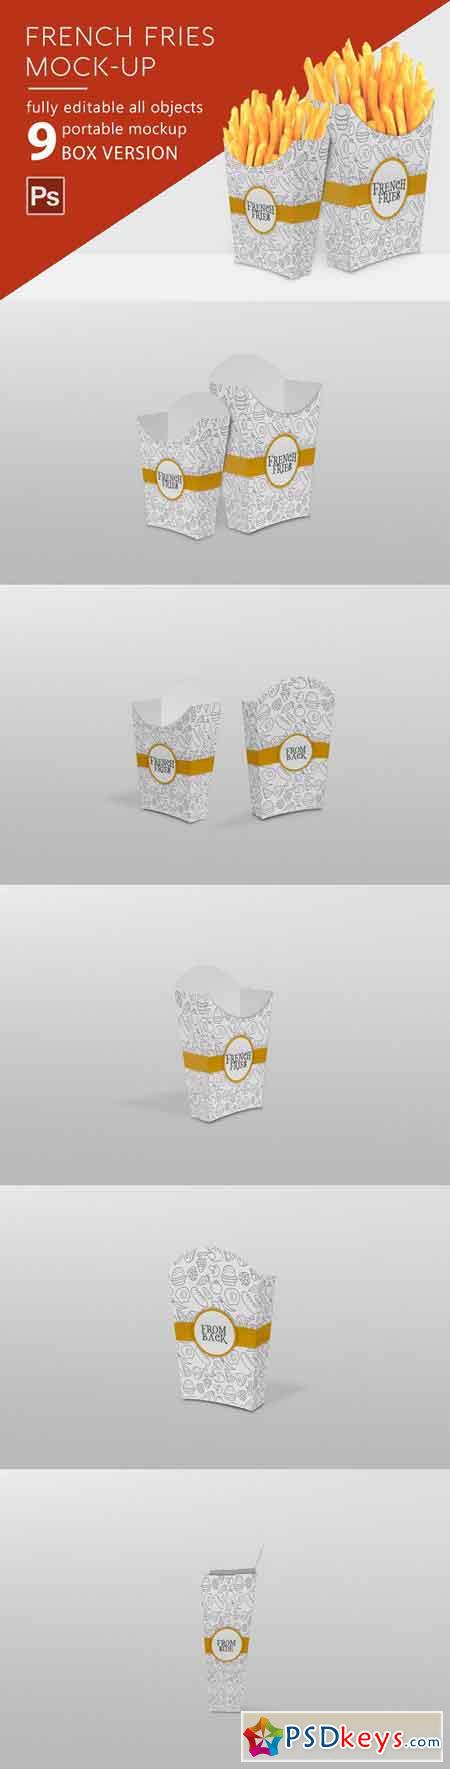 French Fries Mockup 2883085